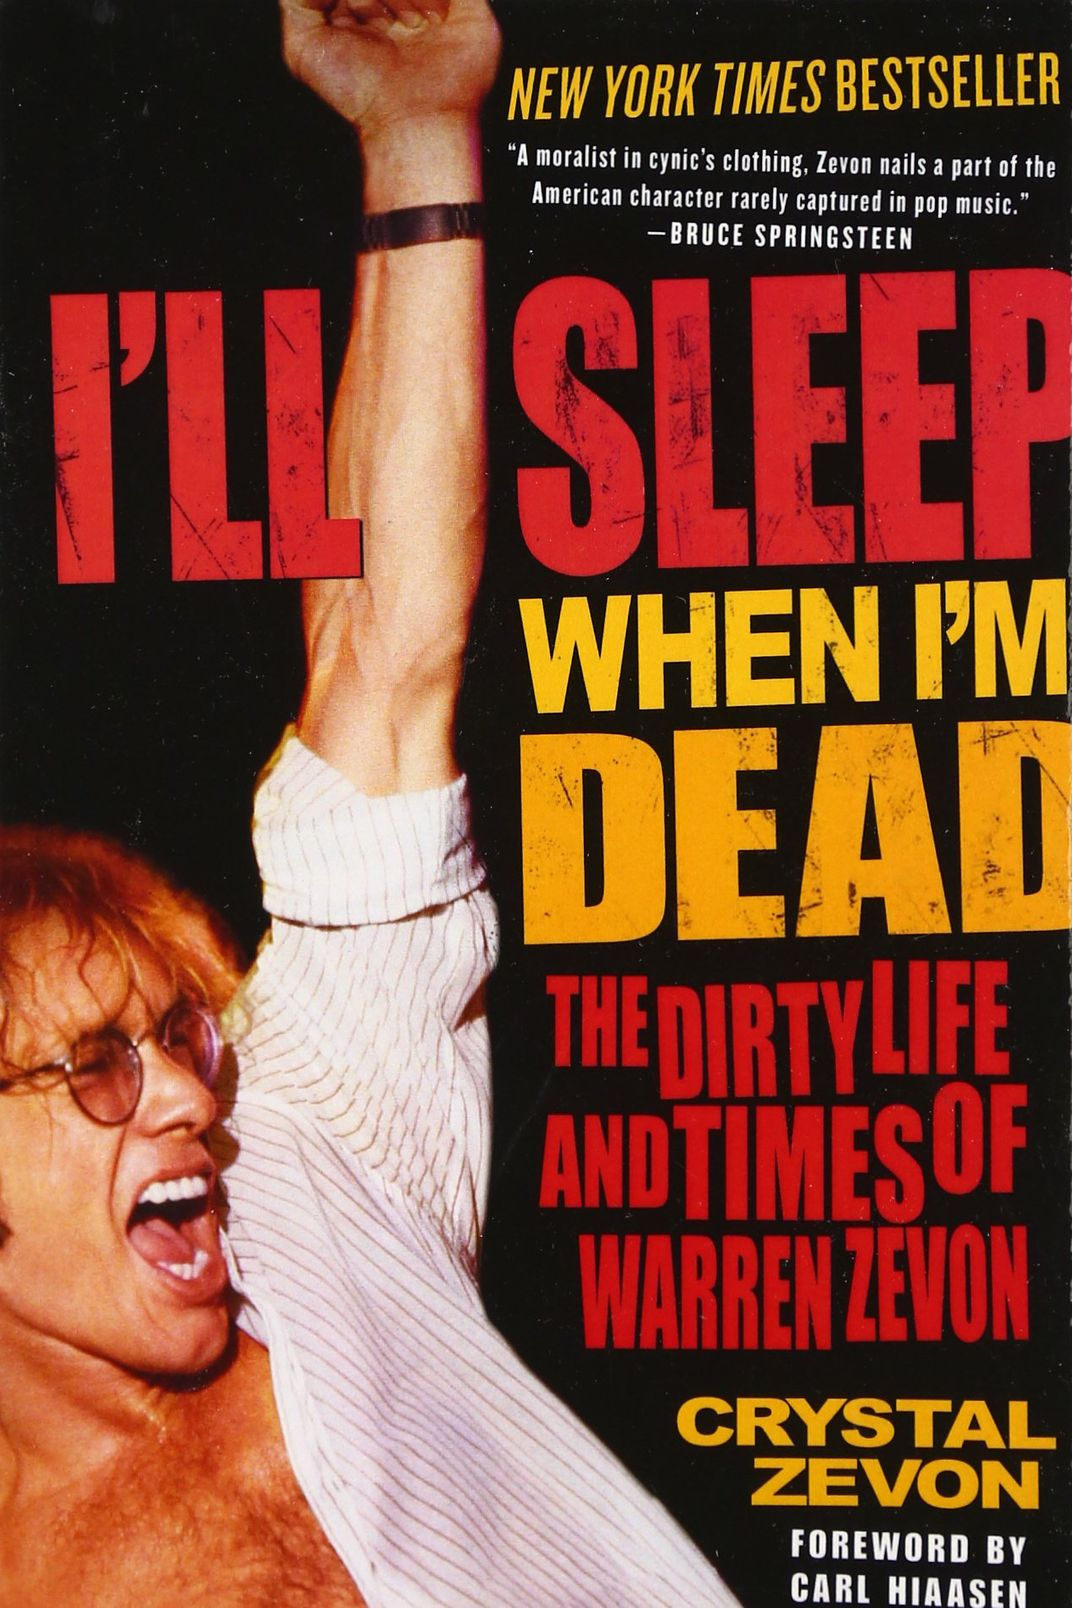 I'll Sleep When I'm Dead: The Dirty Life and Times of Warren Zevon by Crystal Zevon